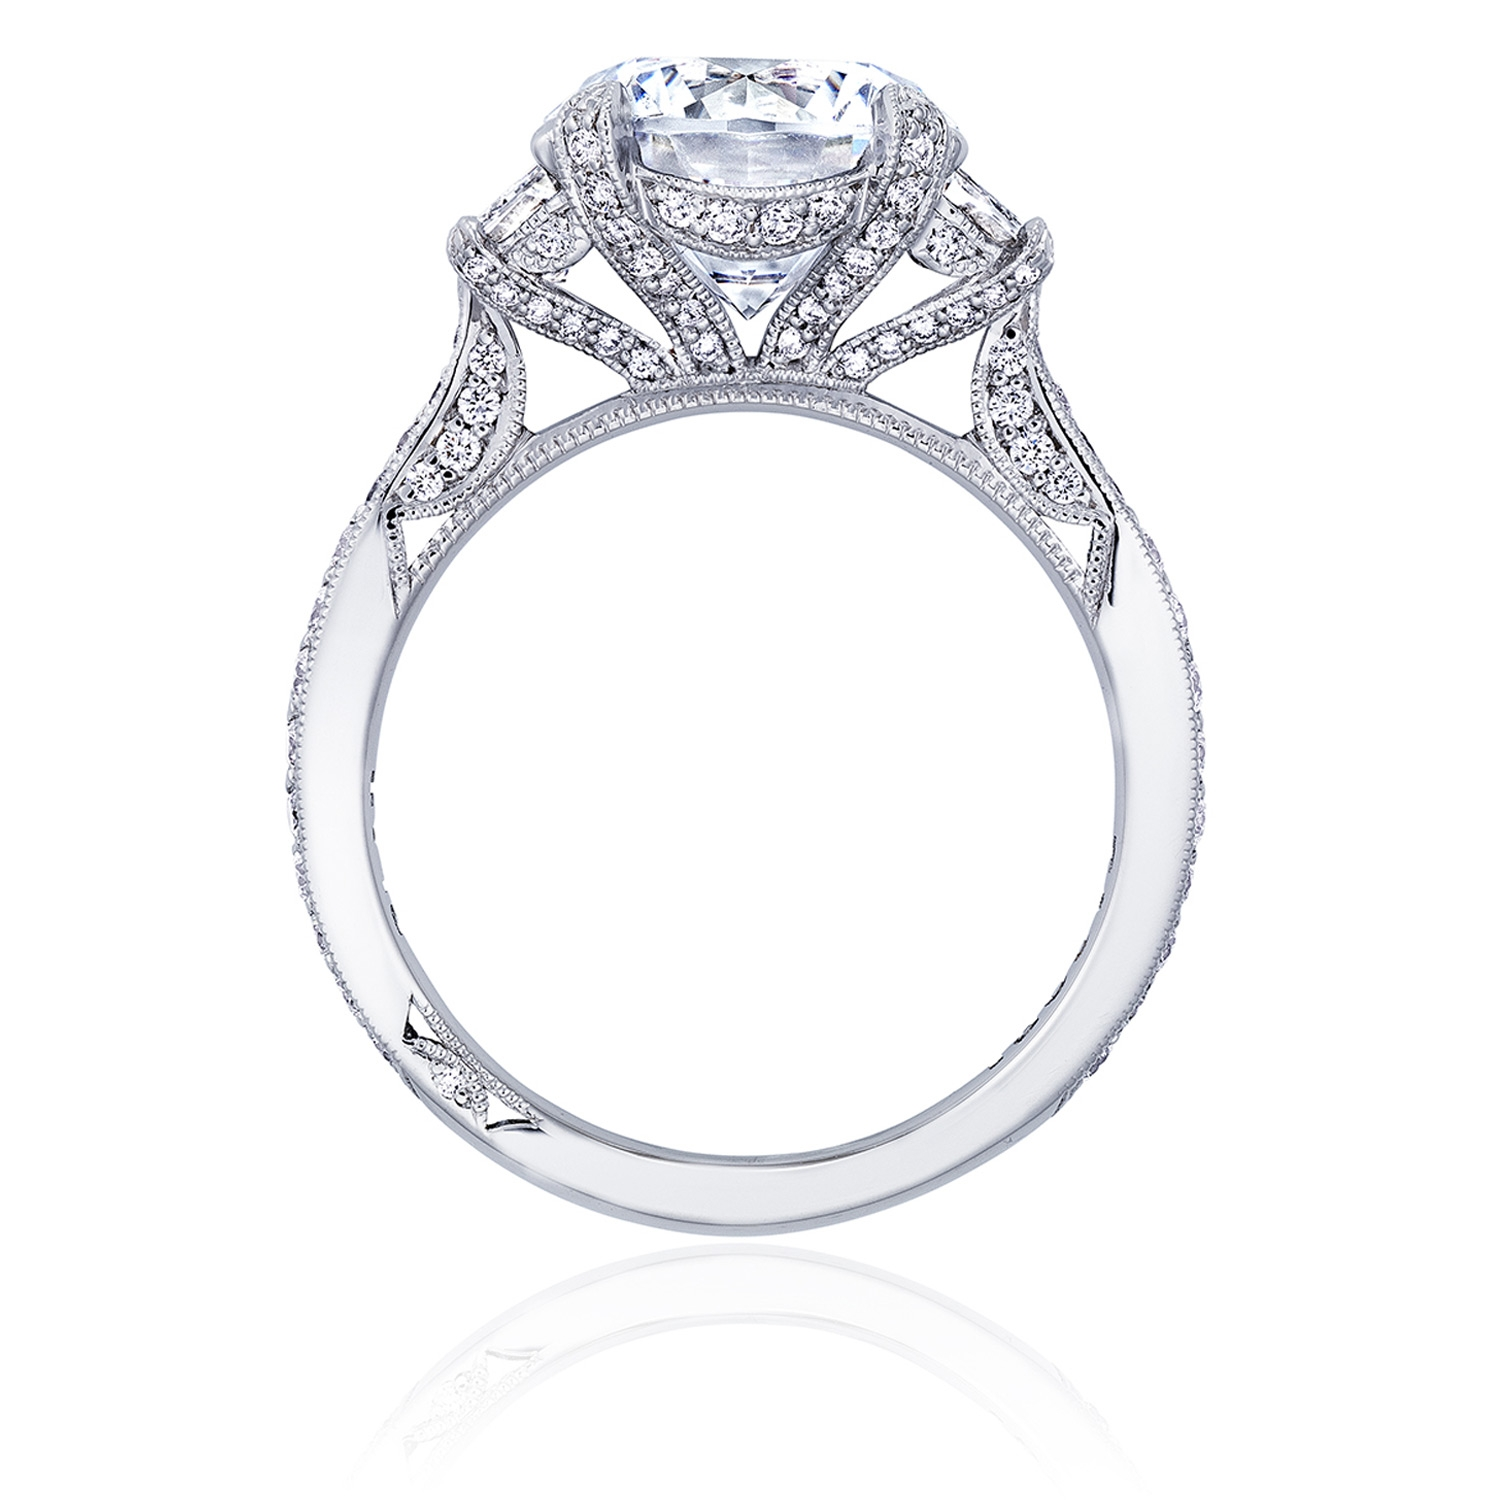 HT2656RD95 Platinum Tacori RoyalT Engagement Ring Alternative View 1